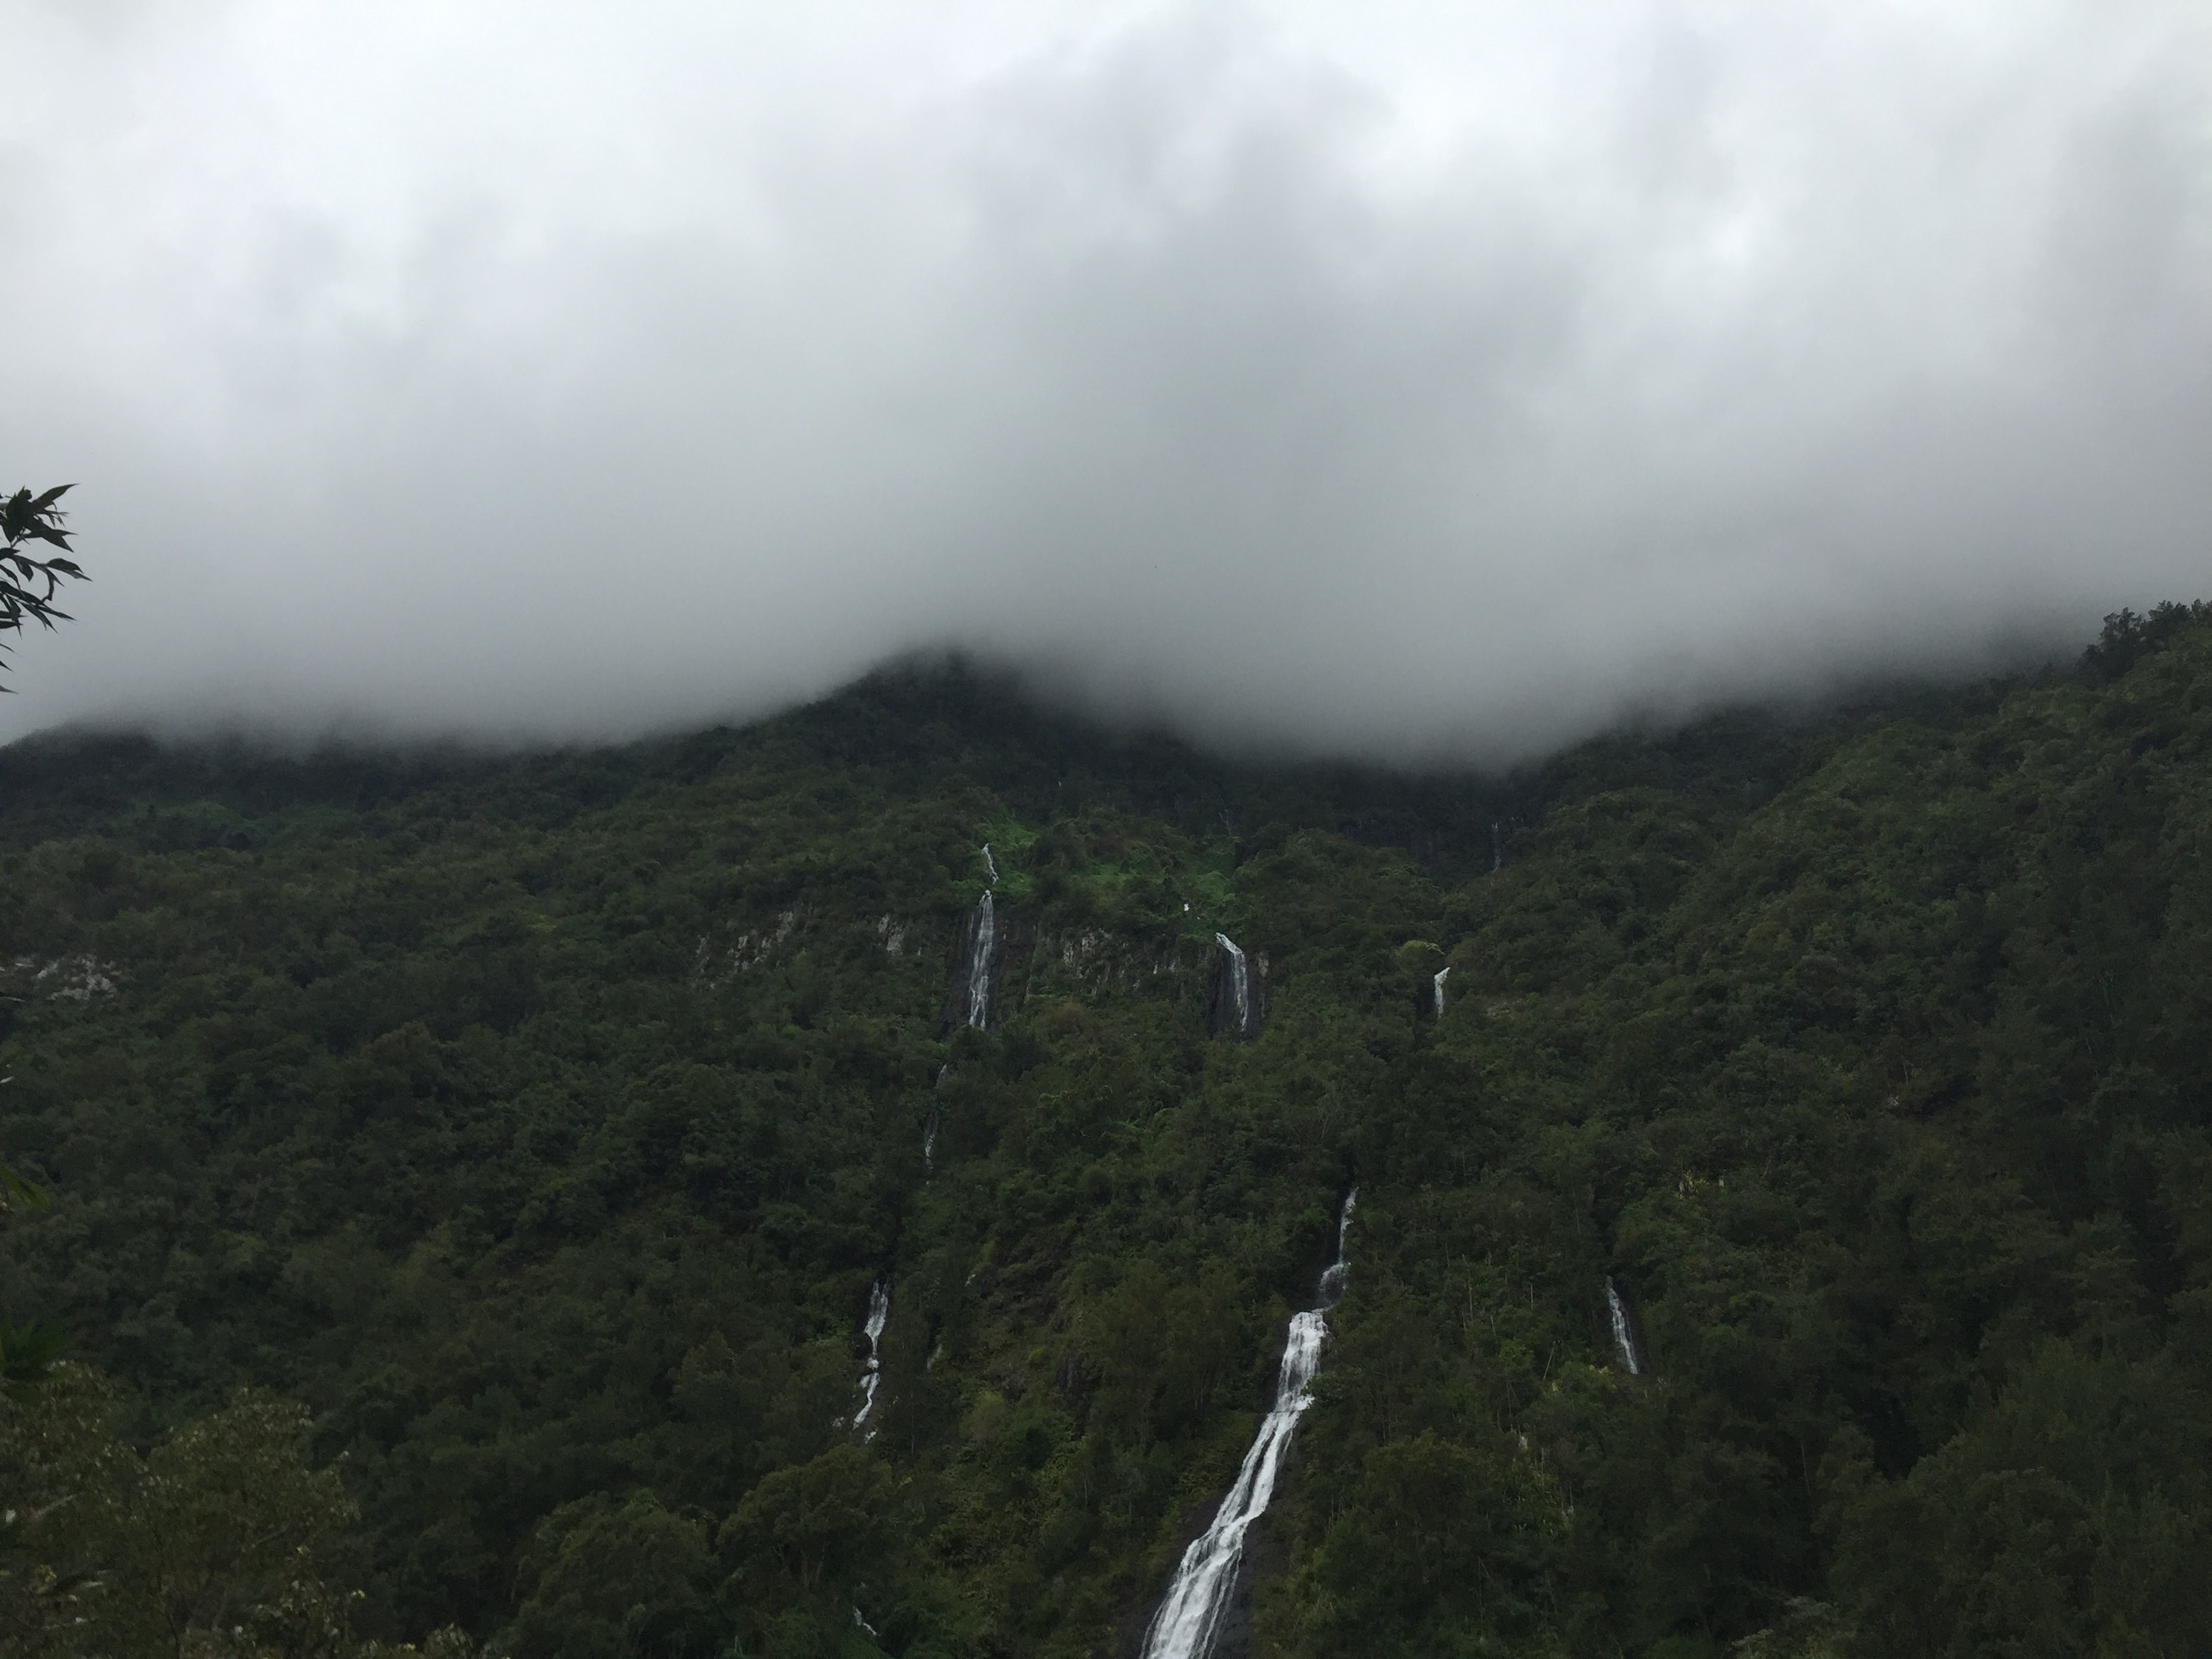 Several waterfalls running down a wooded slope